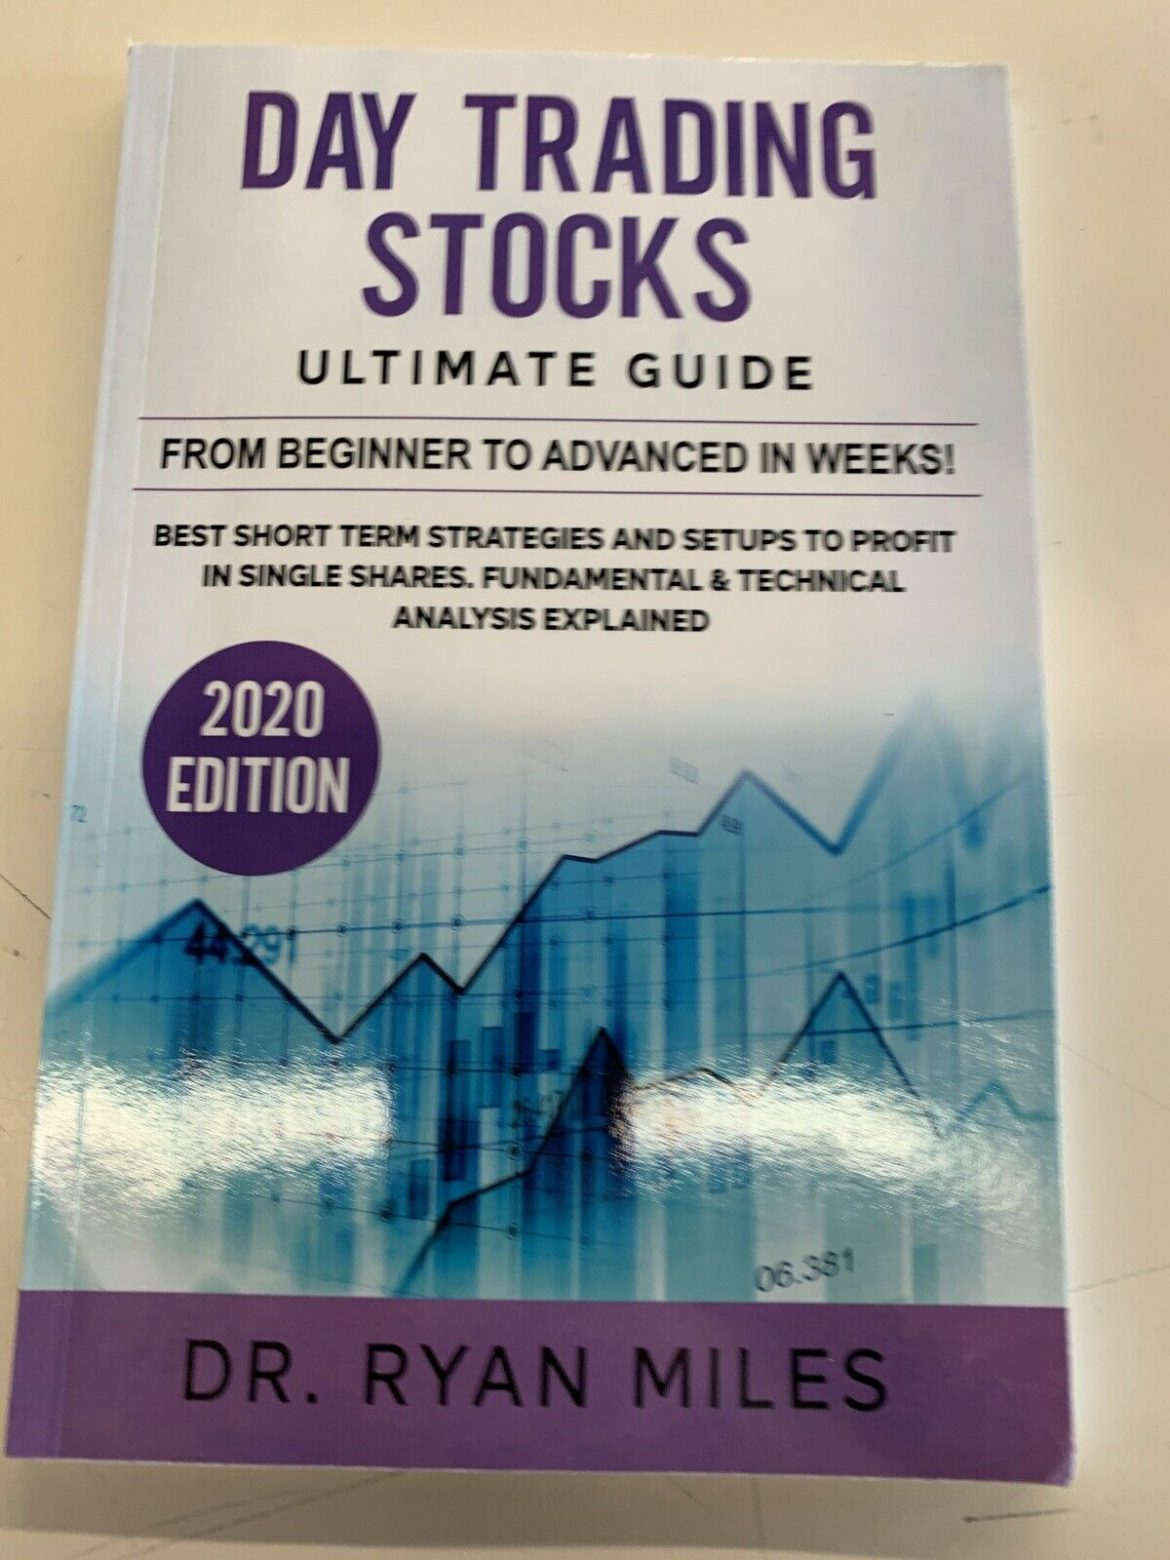 Day Trading Stocks Ultimate Guide: From Beginner to Advanced in weeks